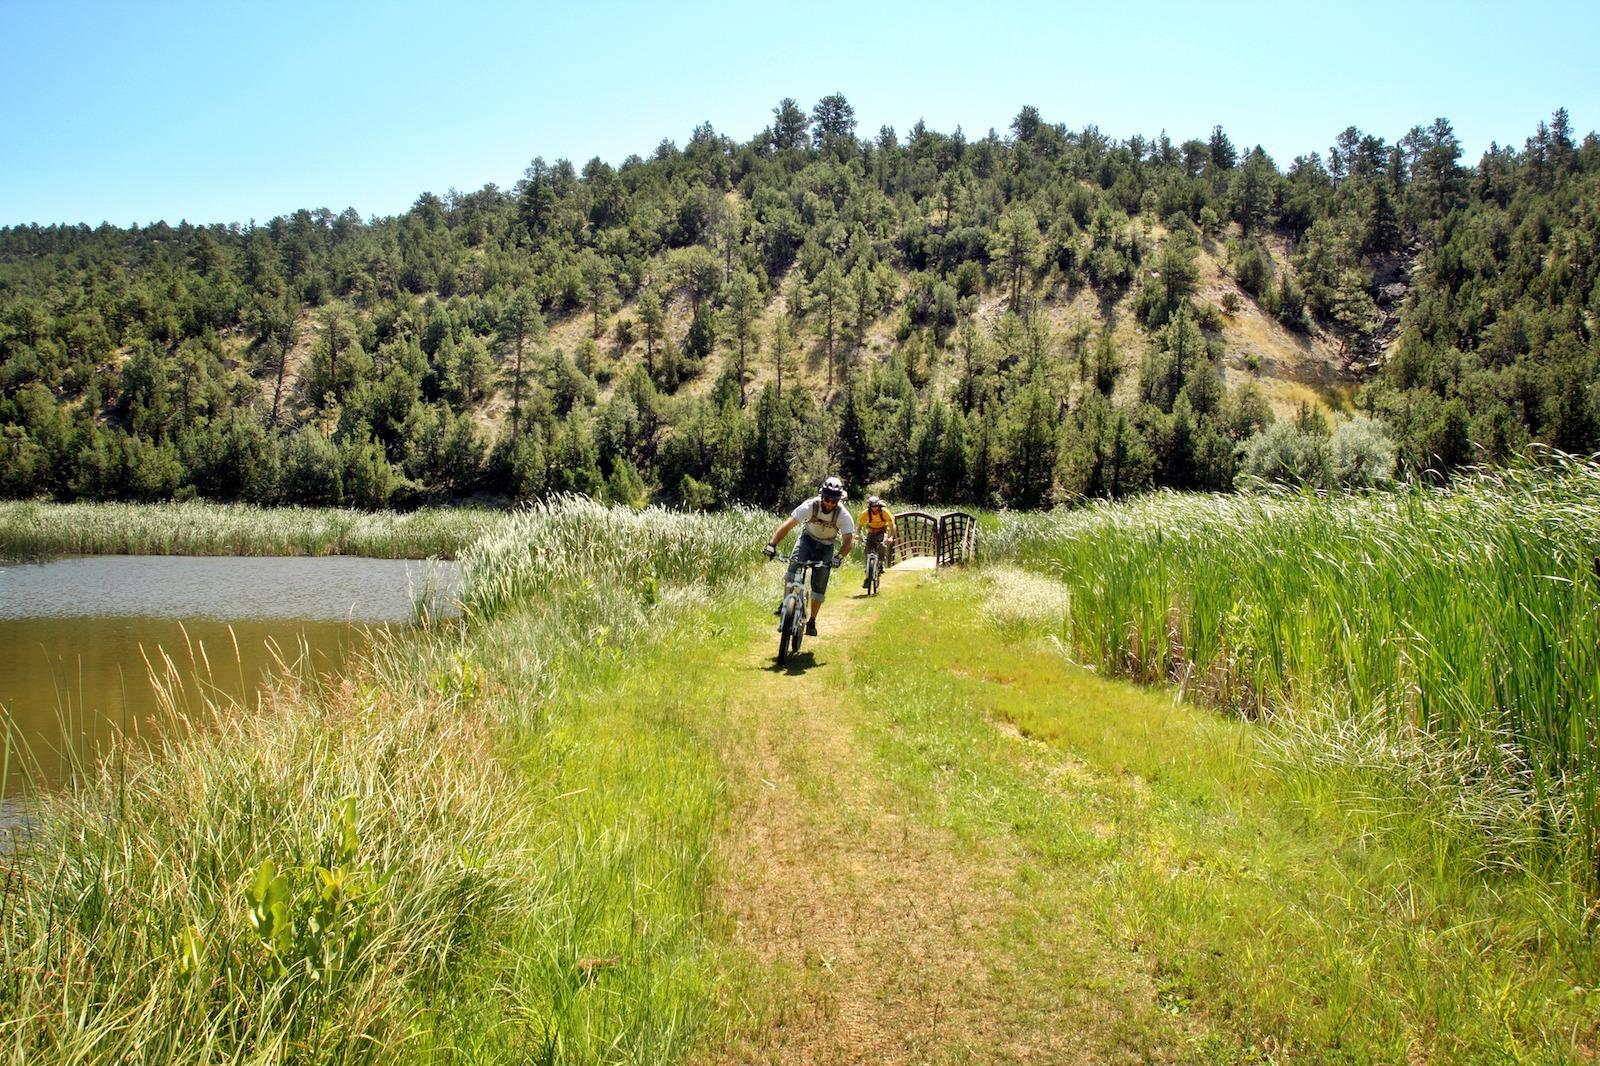 Two mountain bikers on family vacation on an easy trail along Glendo State Park in Platte County, Wyoming